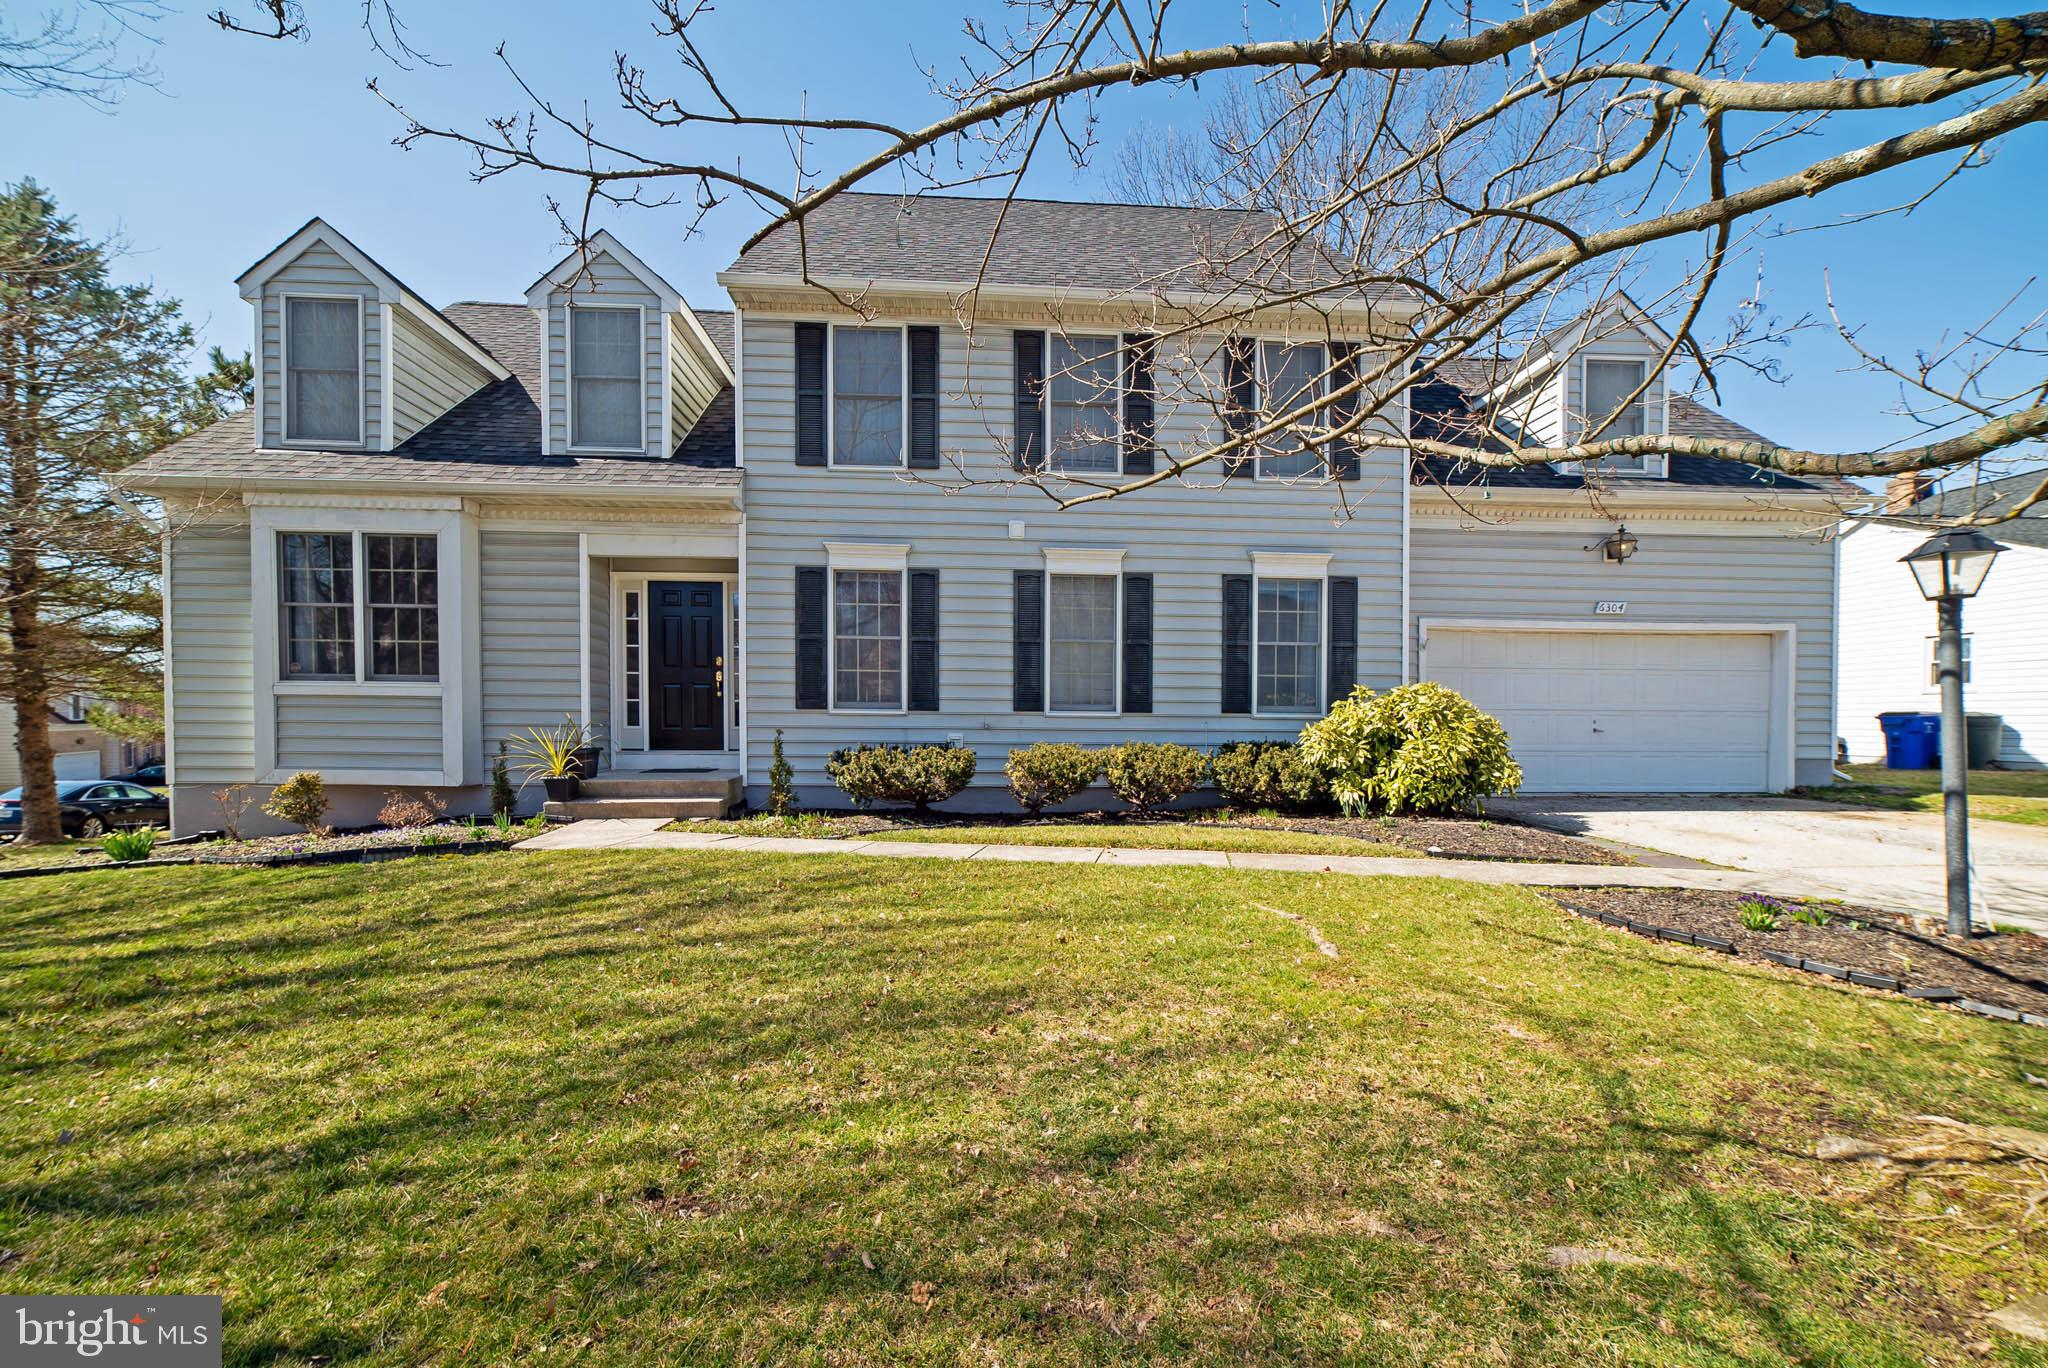 6304 SADDLE DRIVE, COLUMBIA, MD 21045